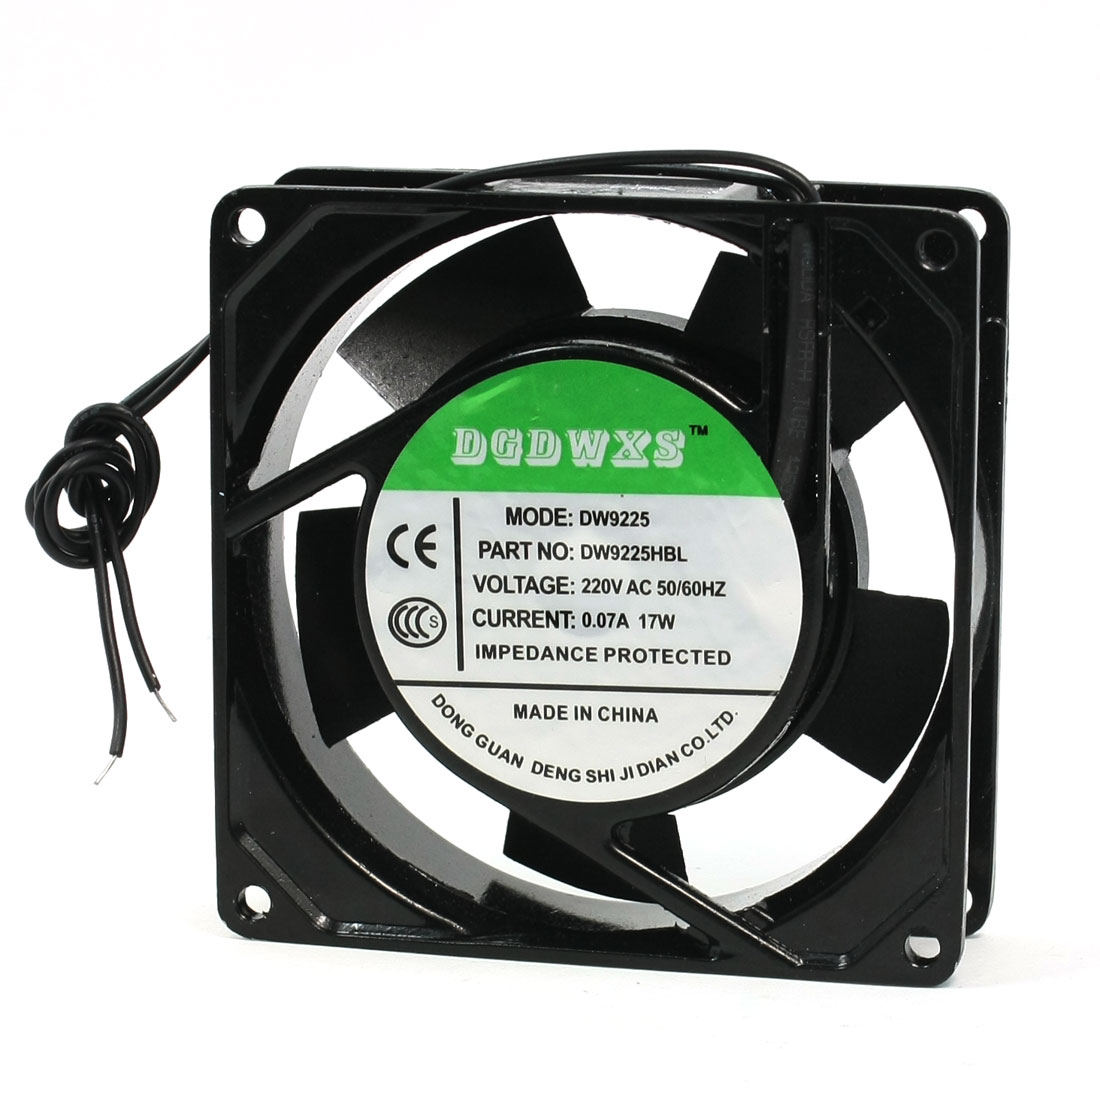 92x92x25mm Plastic Vanes Metal Frame Axial Flow Cooling Fan AC 220V 0.07A 17W